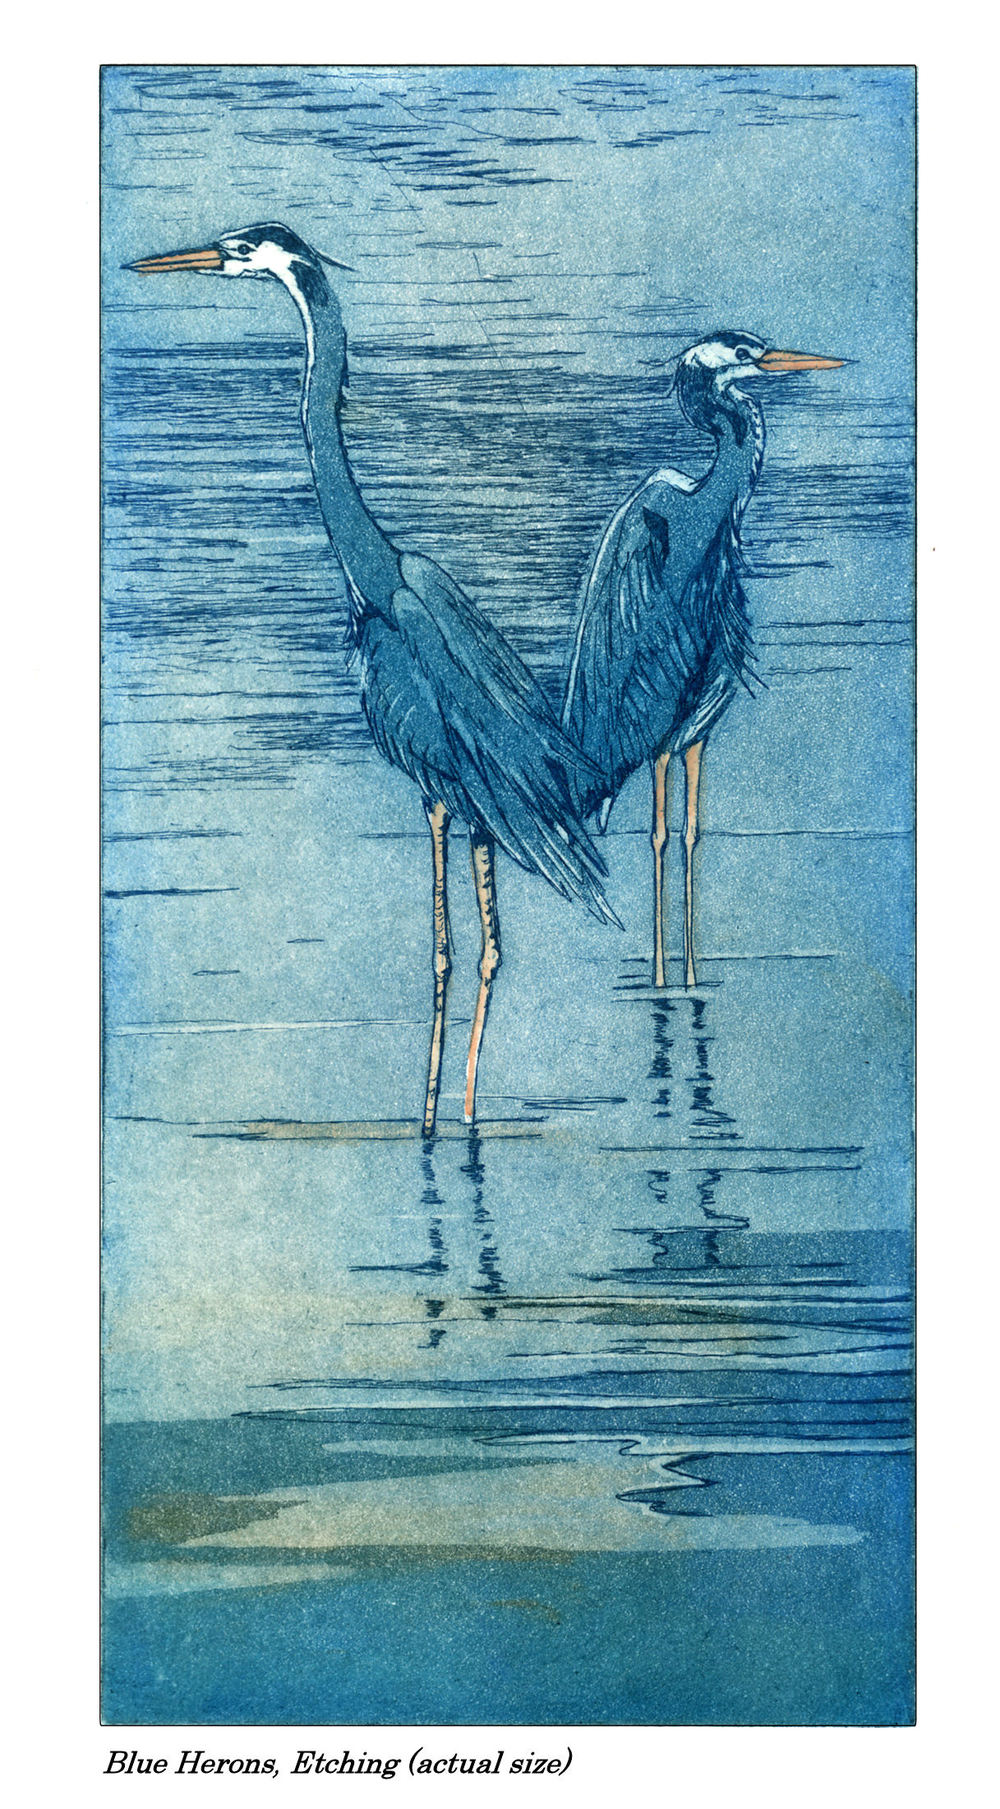 Blue Herons, etching and aquatint